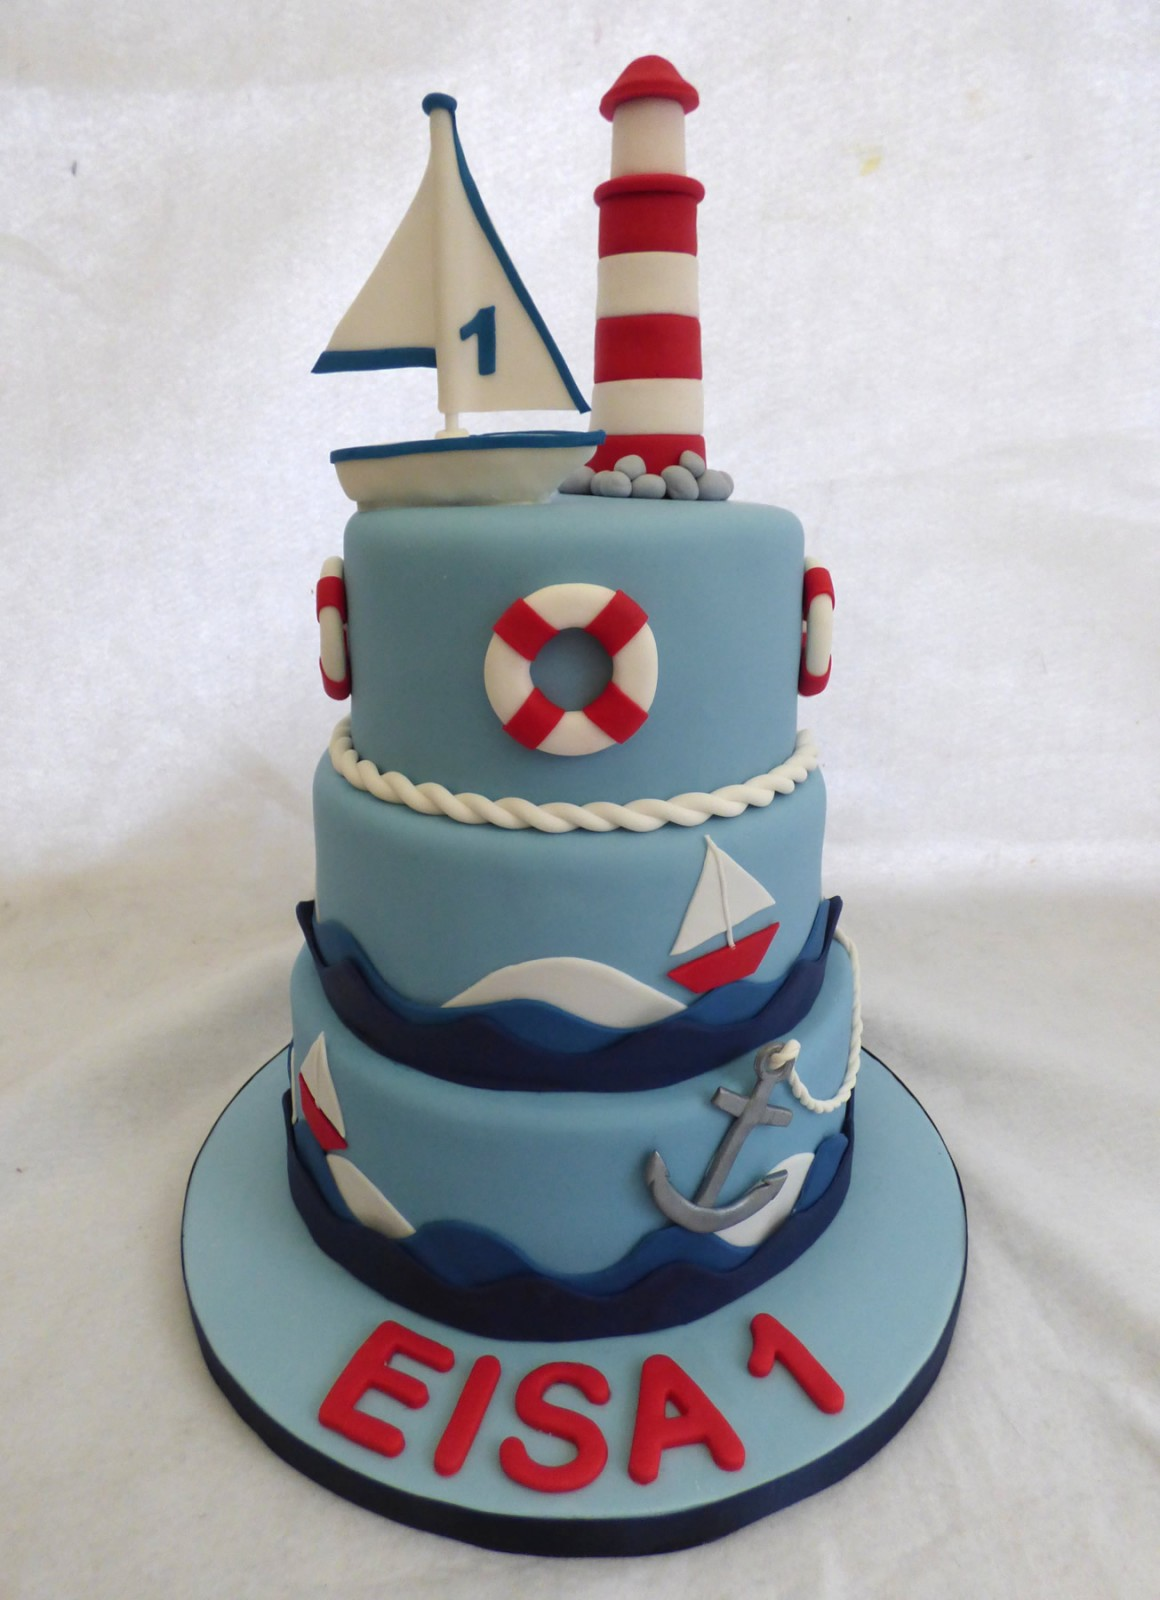 Pleasant 3 Tier Nautical Themed Birthday Cake With A Lighthouse Susies Cakes Personalised Birthday Cards Sponlily Jamesorg